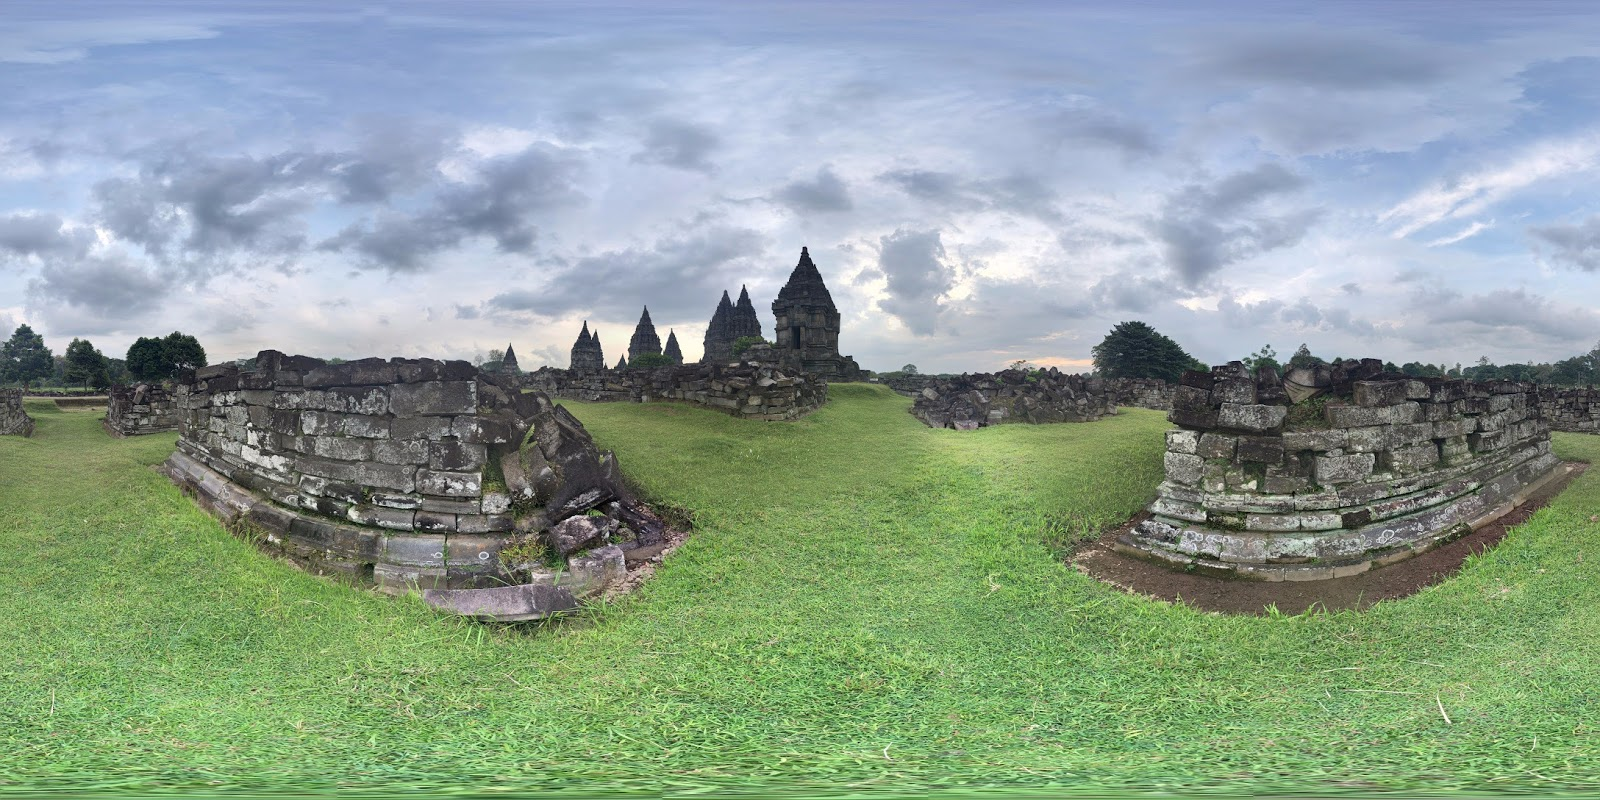 Candi Bubrah Jinggaworks Renovation Construction Jingga Works Perwara Kab Klaten